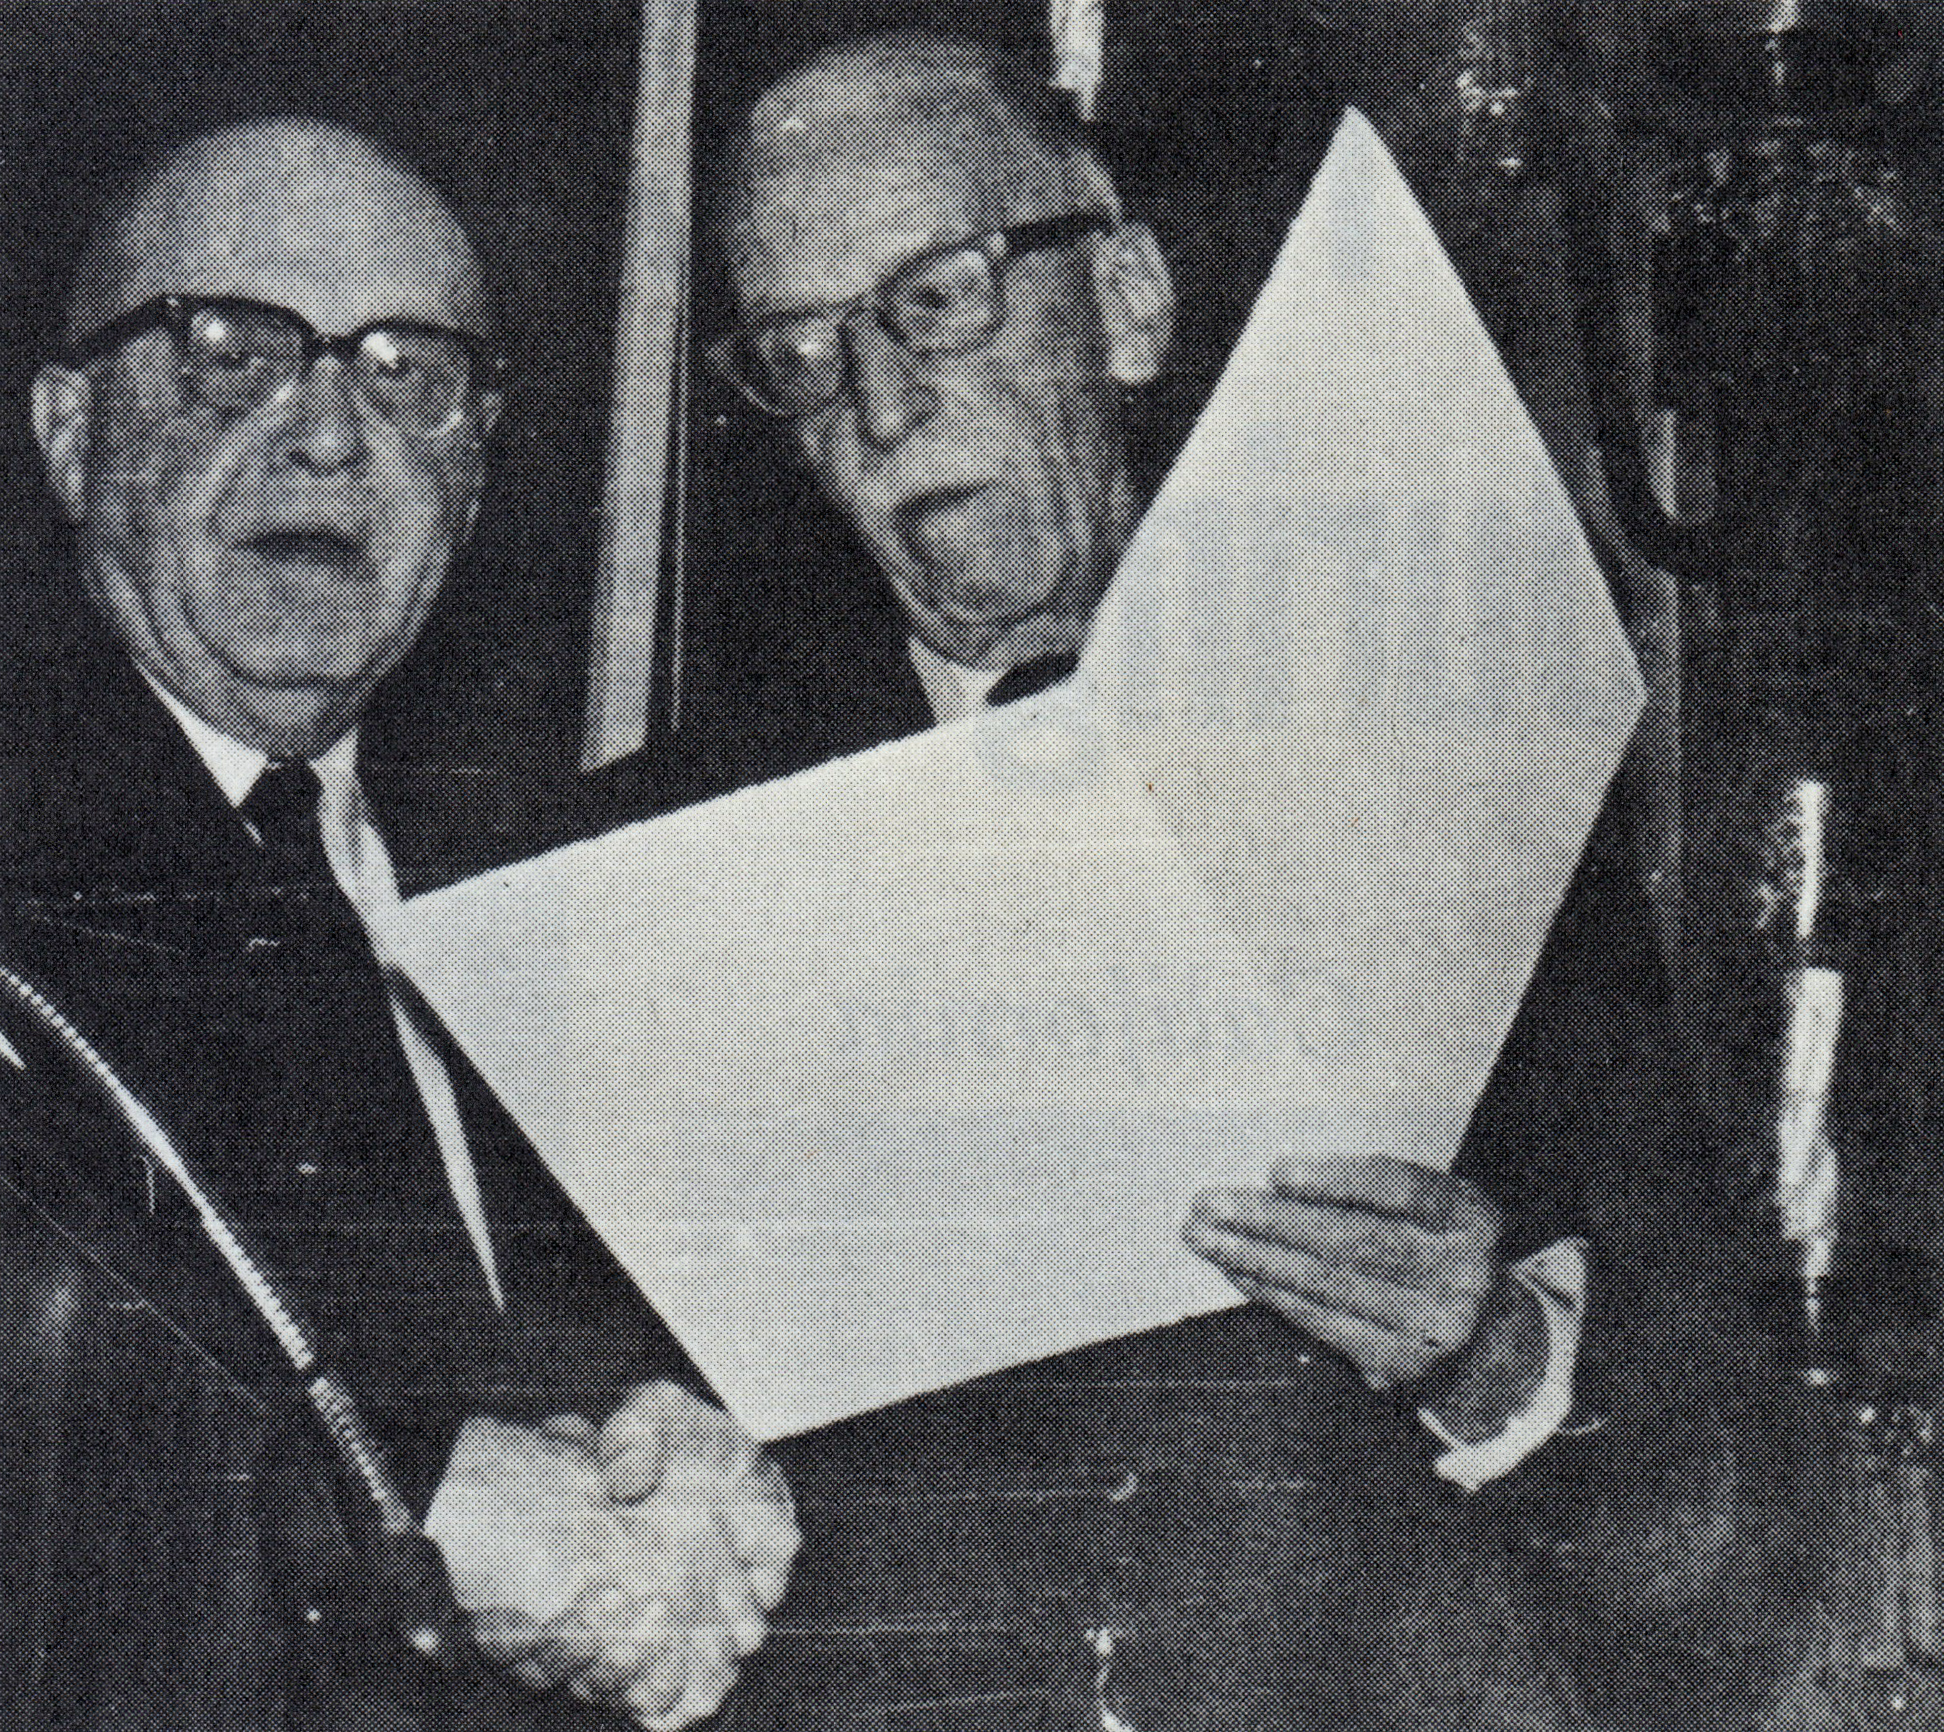 George W. Chapman (R) with Rex A. Smith, Executive Director of Sigma Alpha Epsilon and the retiring president of the CFSA during their summer meeting in Chicago as Chapman recieves a ciation from the College Fraternity Secretaries Association - Nov. 30, 1967